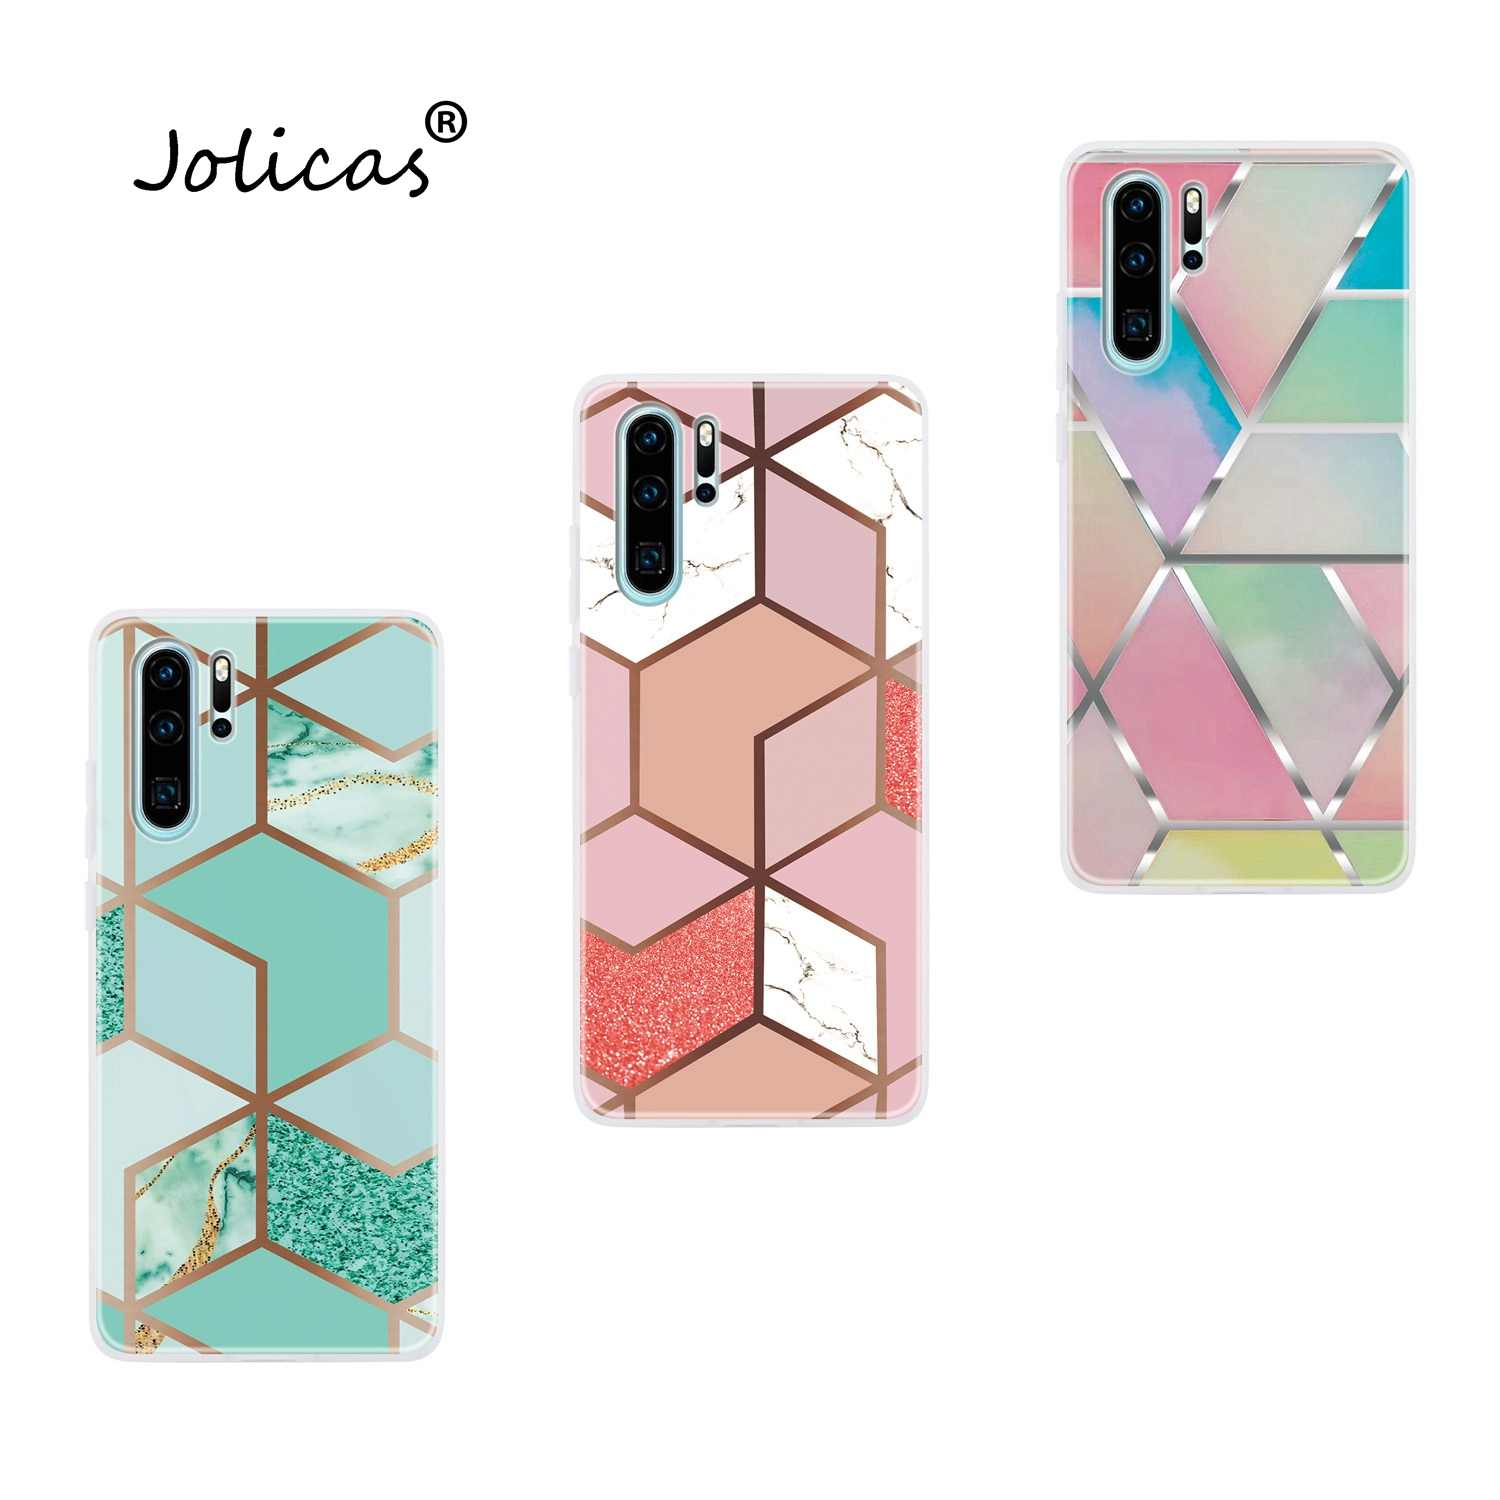 Marble Soft TPU Case For Huawei P30 Plus Lite Cell Phone Cover Huawei Y5 2019 Y7 P20 Pro coque Nova 3e 4E 5T 3i Y9 Prime 2018 Y6